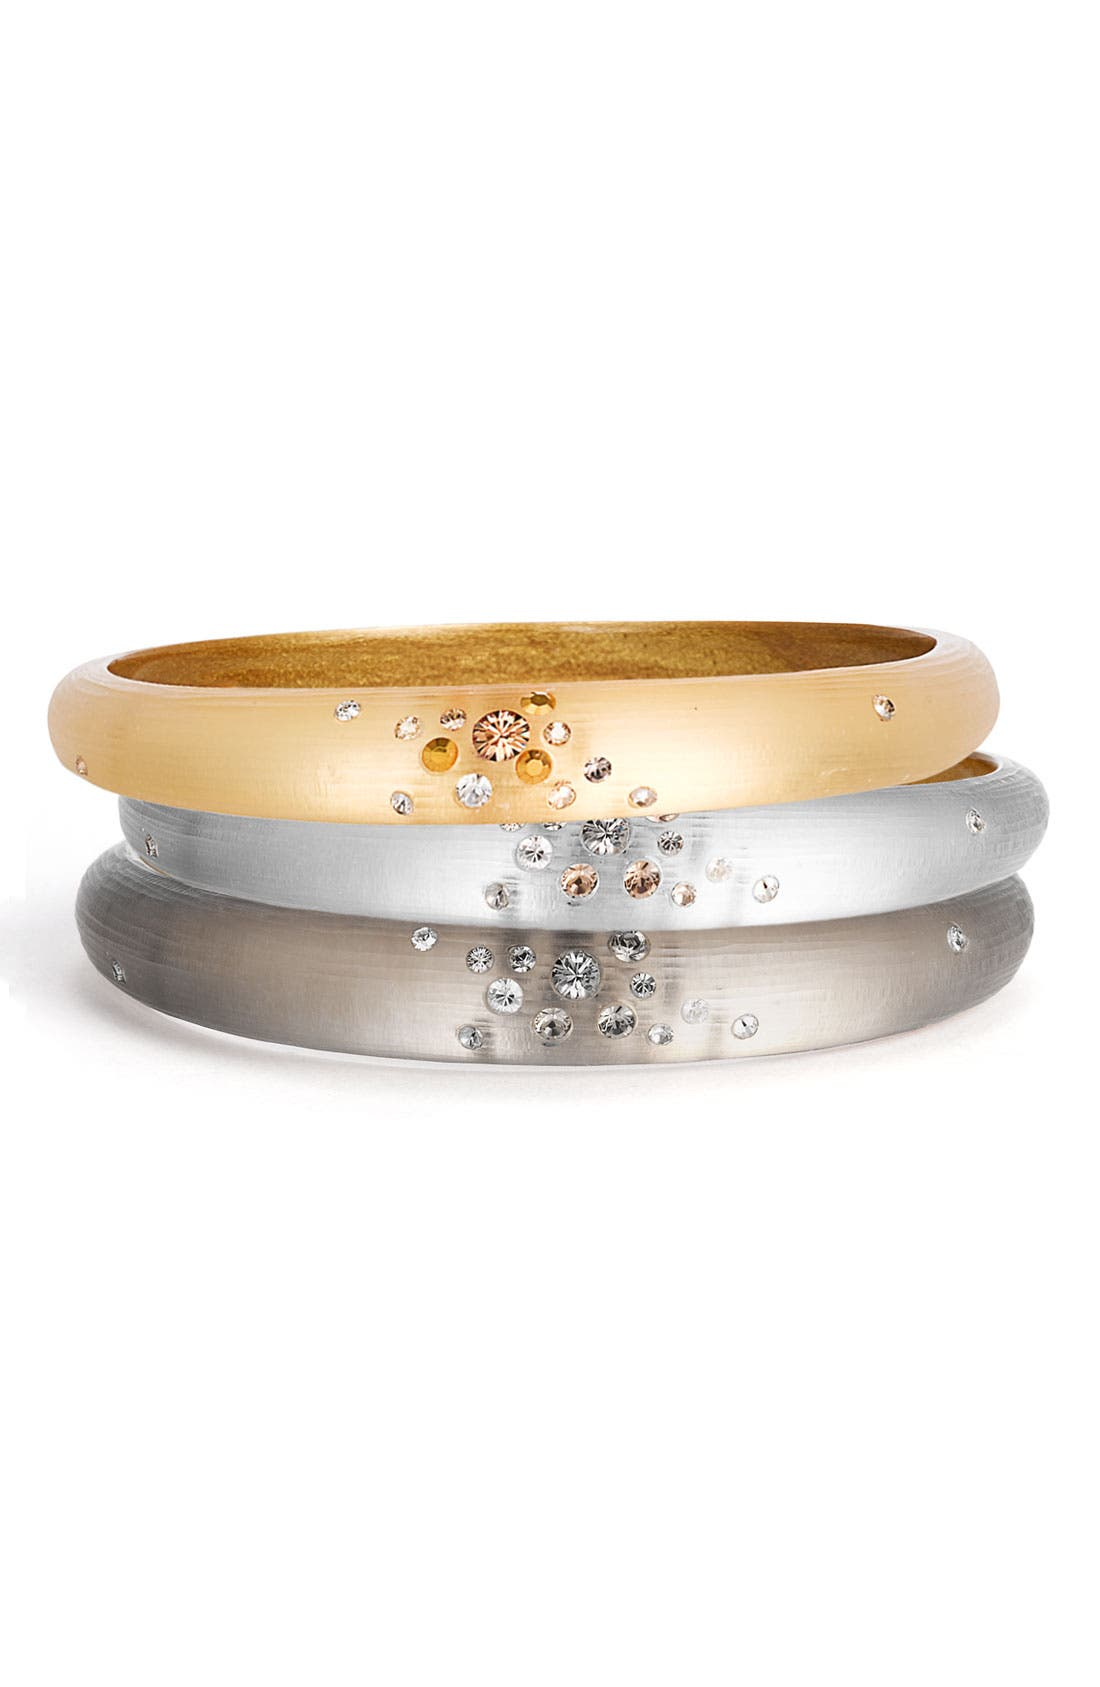 Alternate Image 2  - Alexis Bittar 'Dust' Skinny Tapered Bangle (Nordstrom Exclusive)